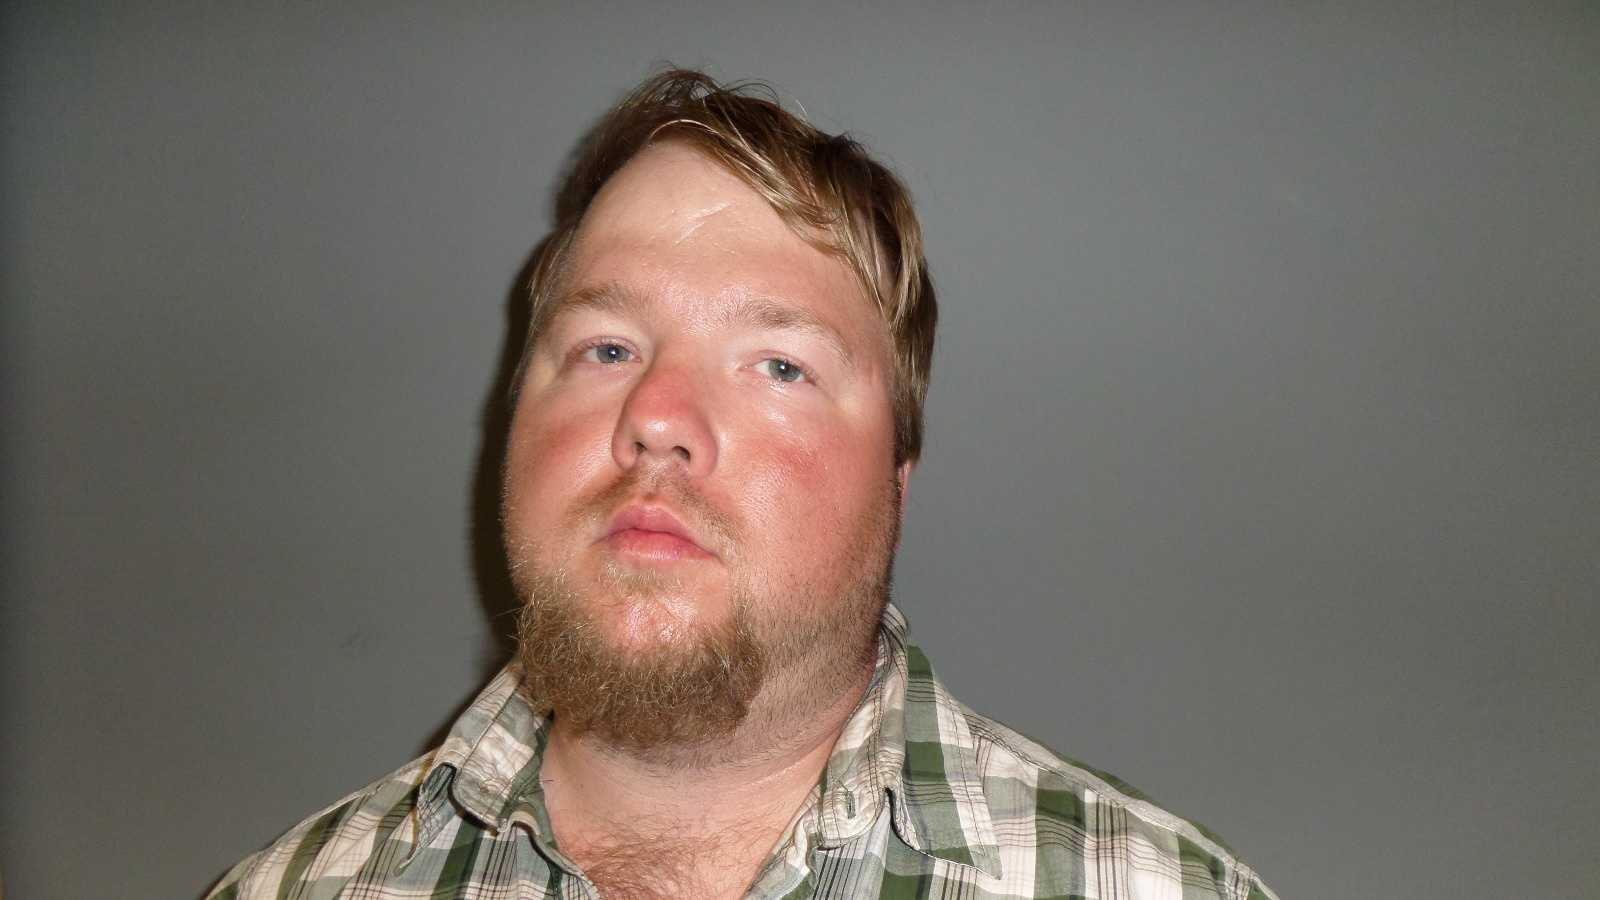 34-year-old Nathan Dunbar accused of growing 50 marijuana plants inside his residence in Duxbury, Vt.